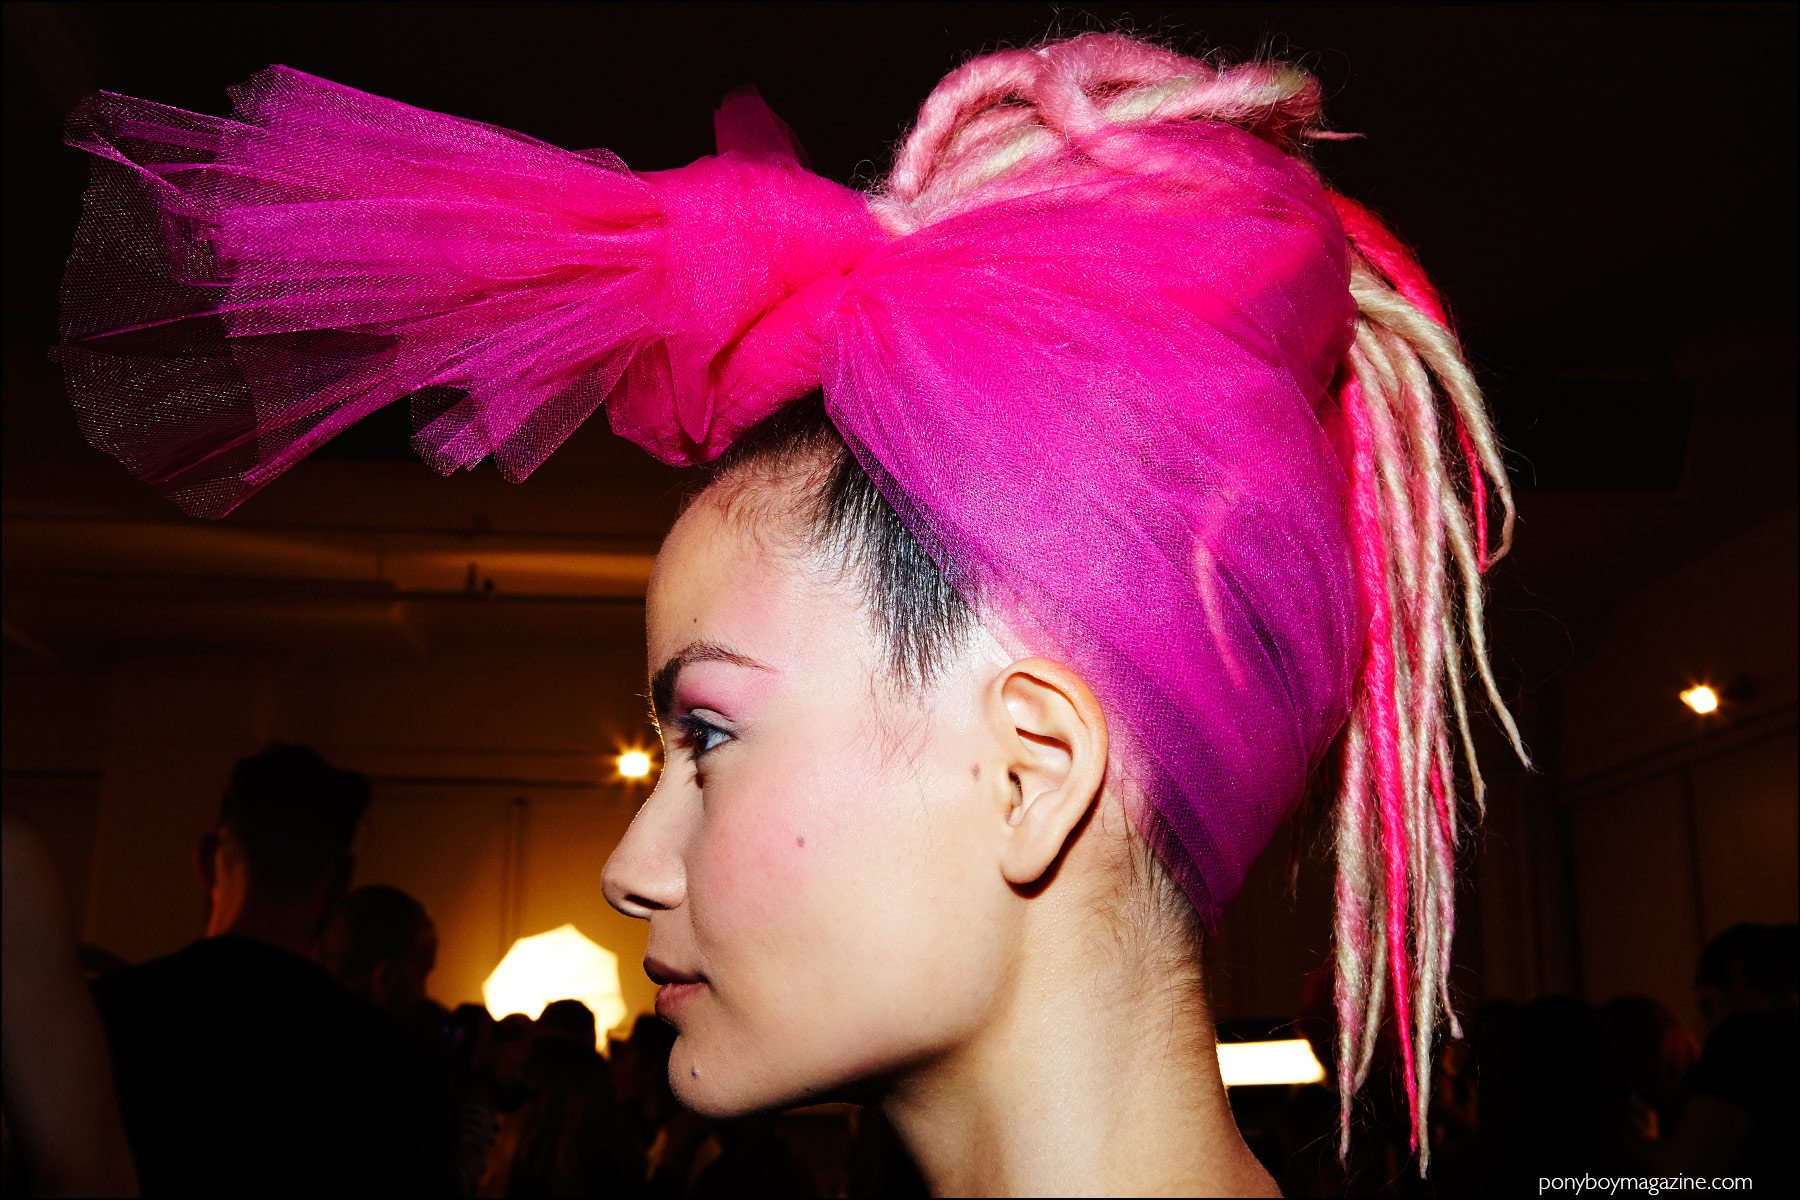 Profile photograph of a model in a pink head scarf, backstage at The Blonds F/W16 show. Photography by Alexander Thompson for Ponyboy magazine NY.